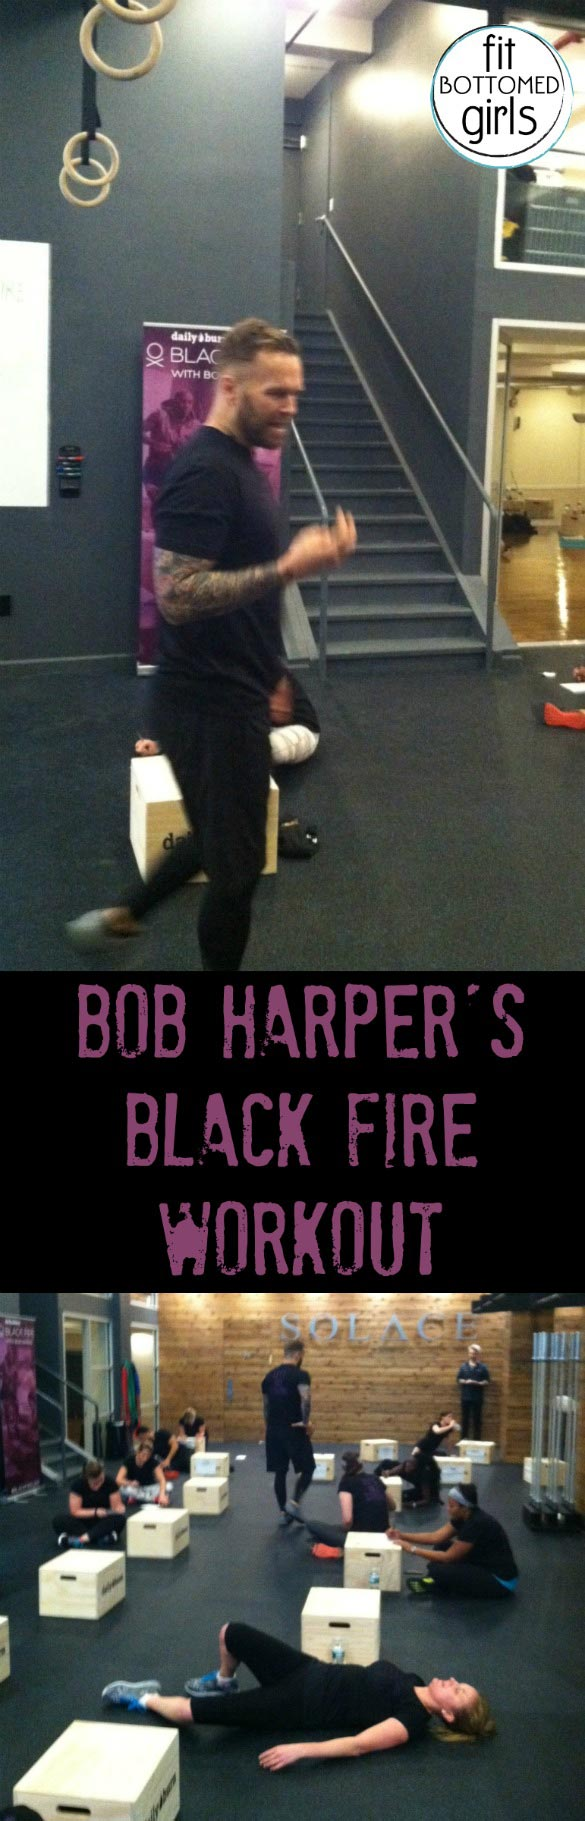 black-fire-bob-harper